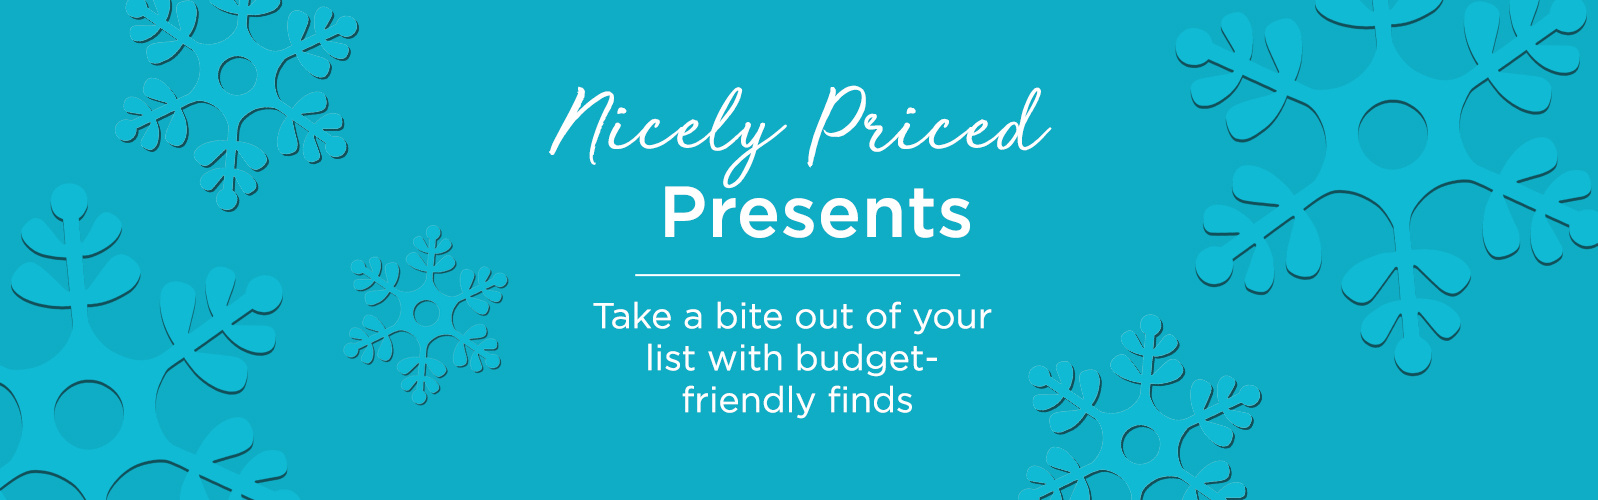 Nicely Priced Presents. Take a bite out of your list with budget-friendly finds